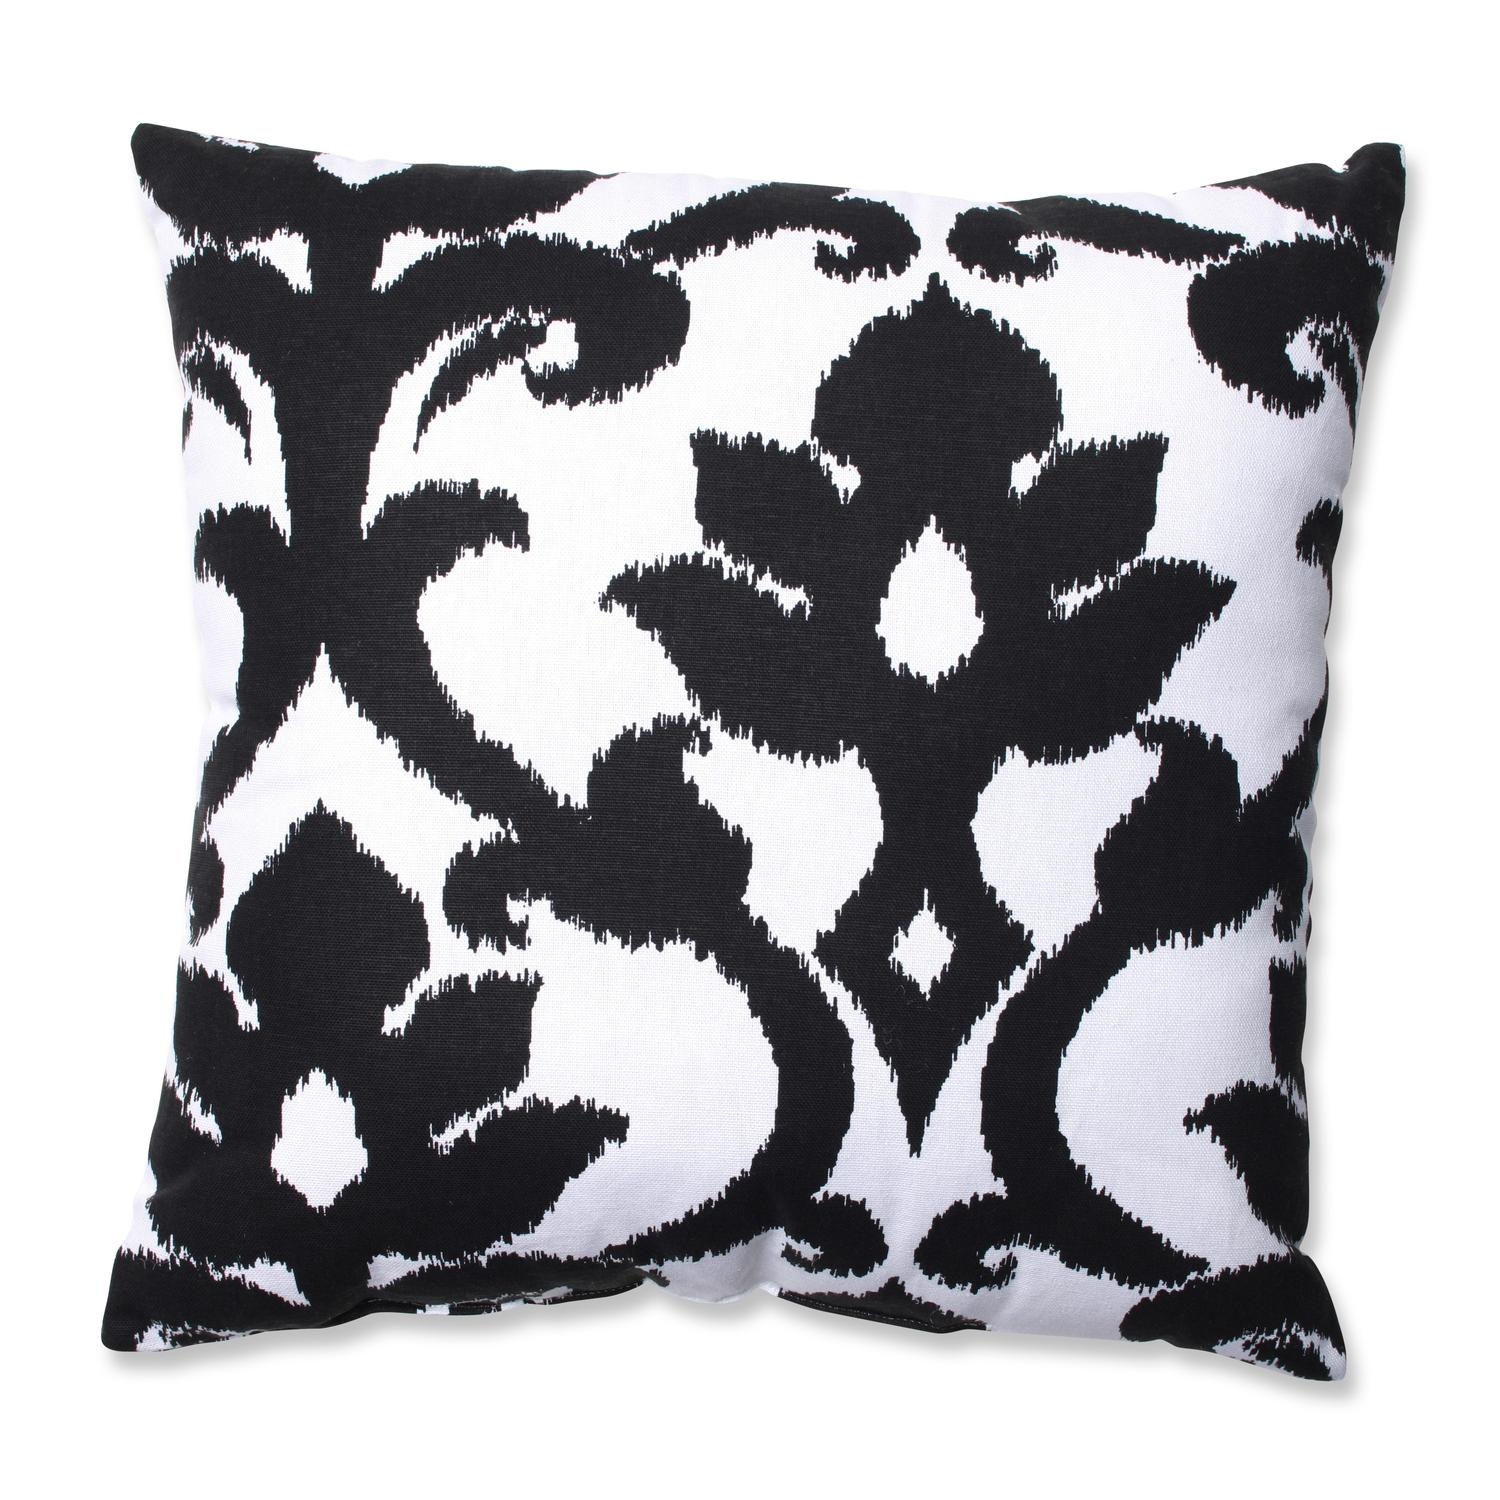 "16.5"" Azzure Jet Black and Winter White Floral Damask Ikat Throw Pillow by CC Home Furnishings"